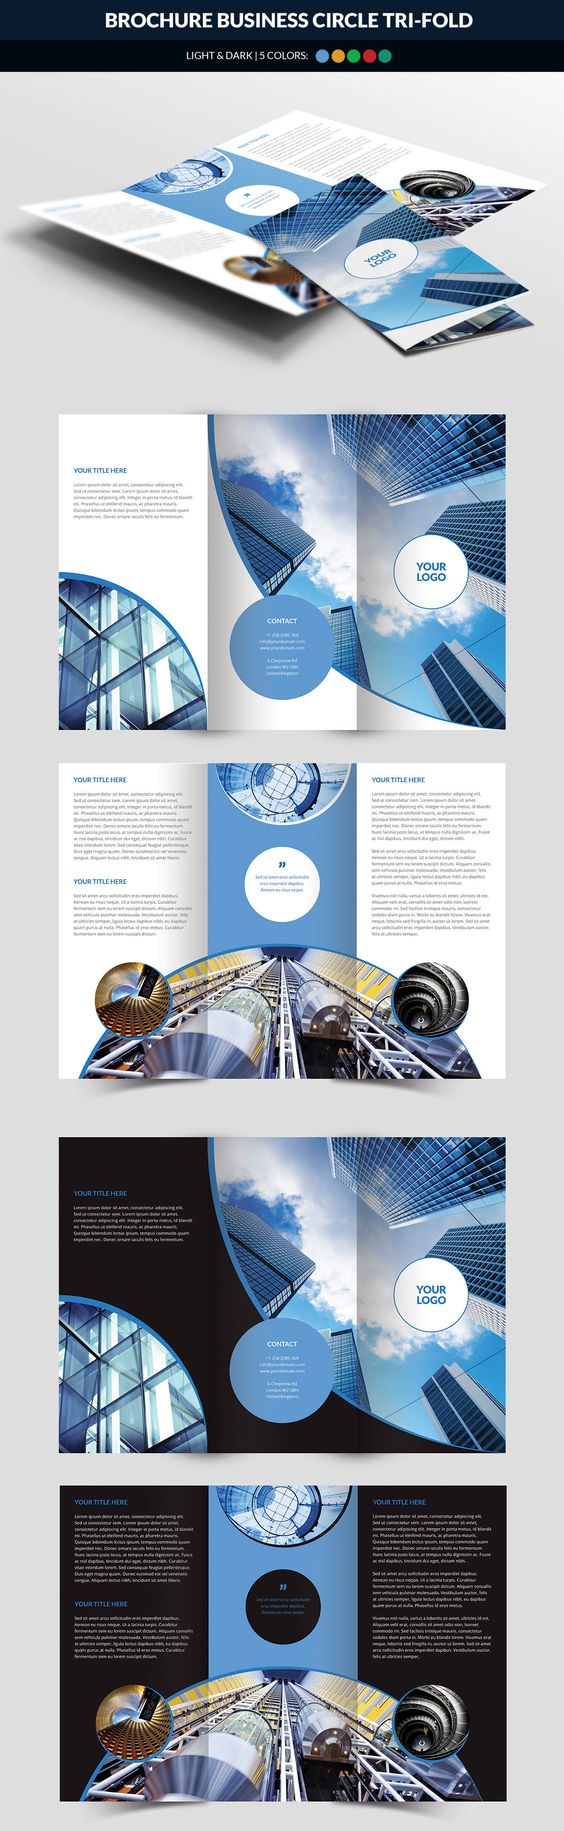 circle brochure template - pinterest the world s catalog of ideas